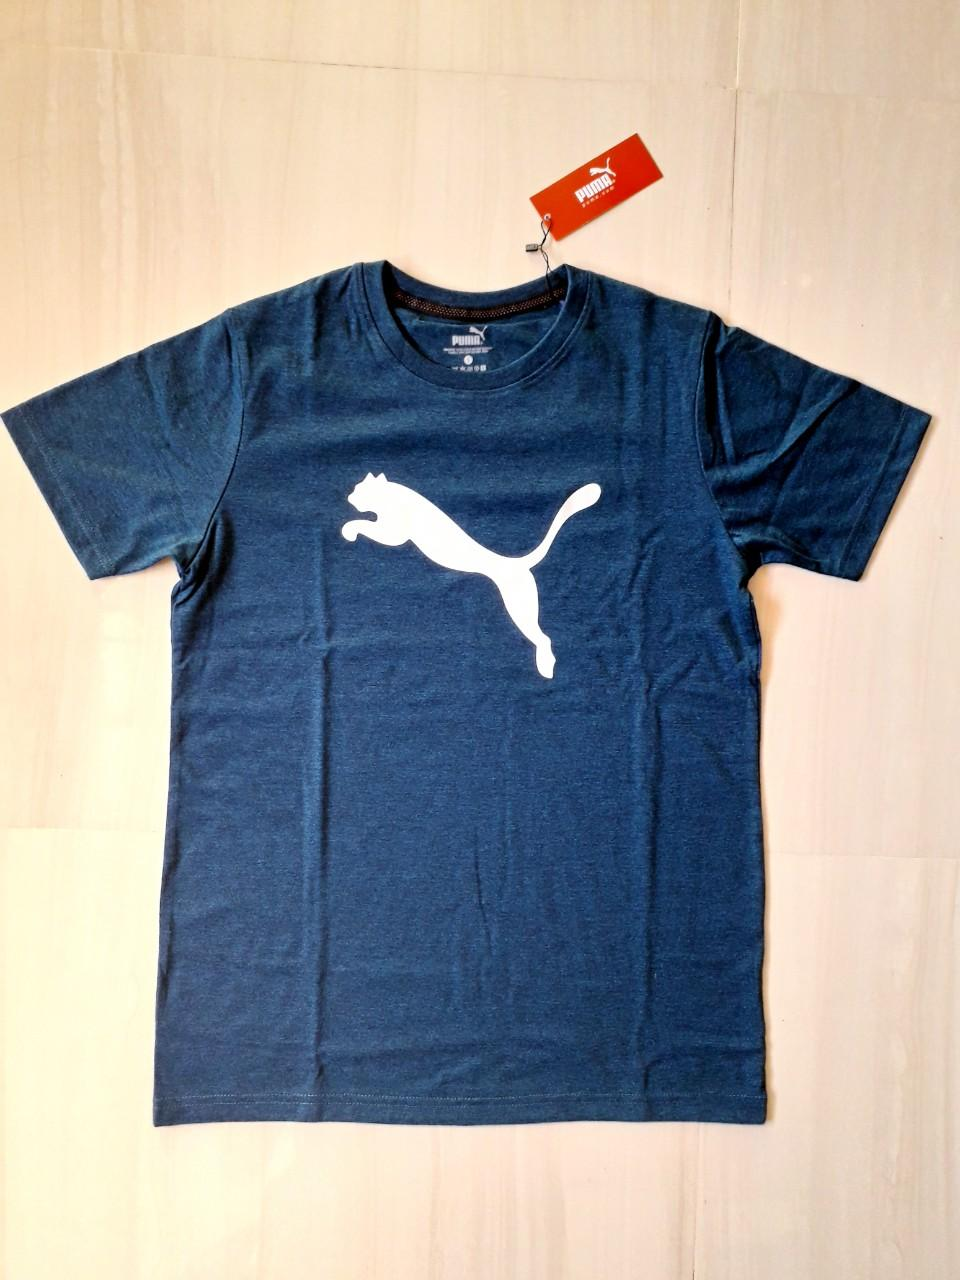 cacda757 Men's T-shirts at Best Prices in Sri Lanka